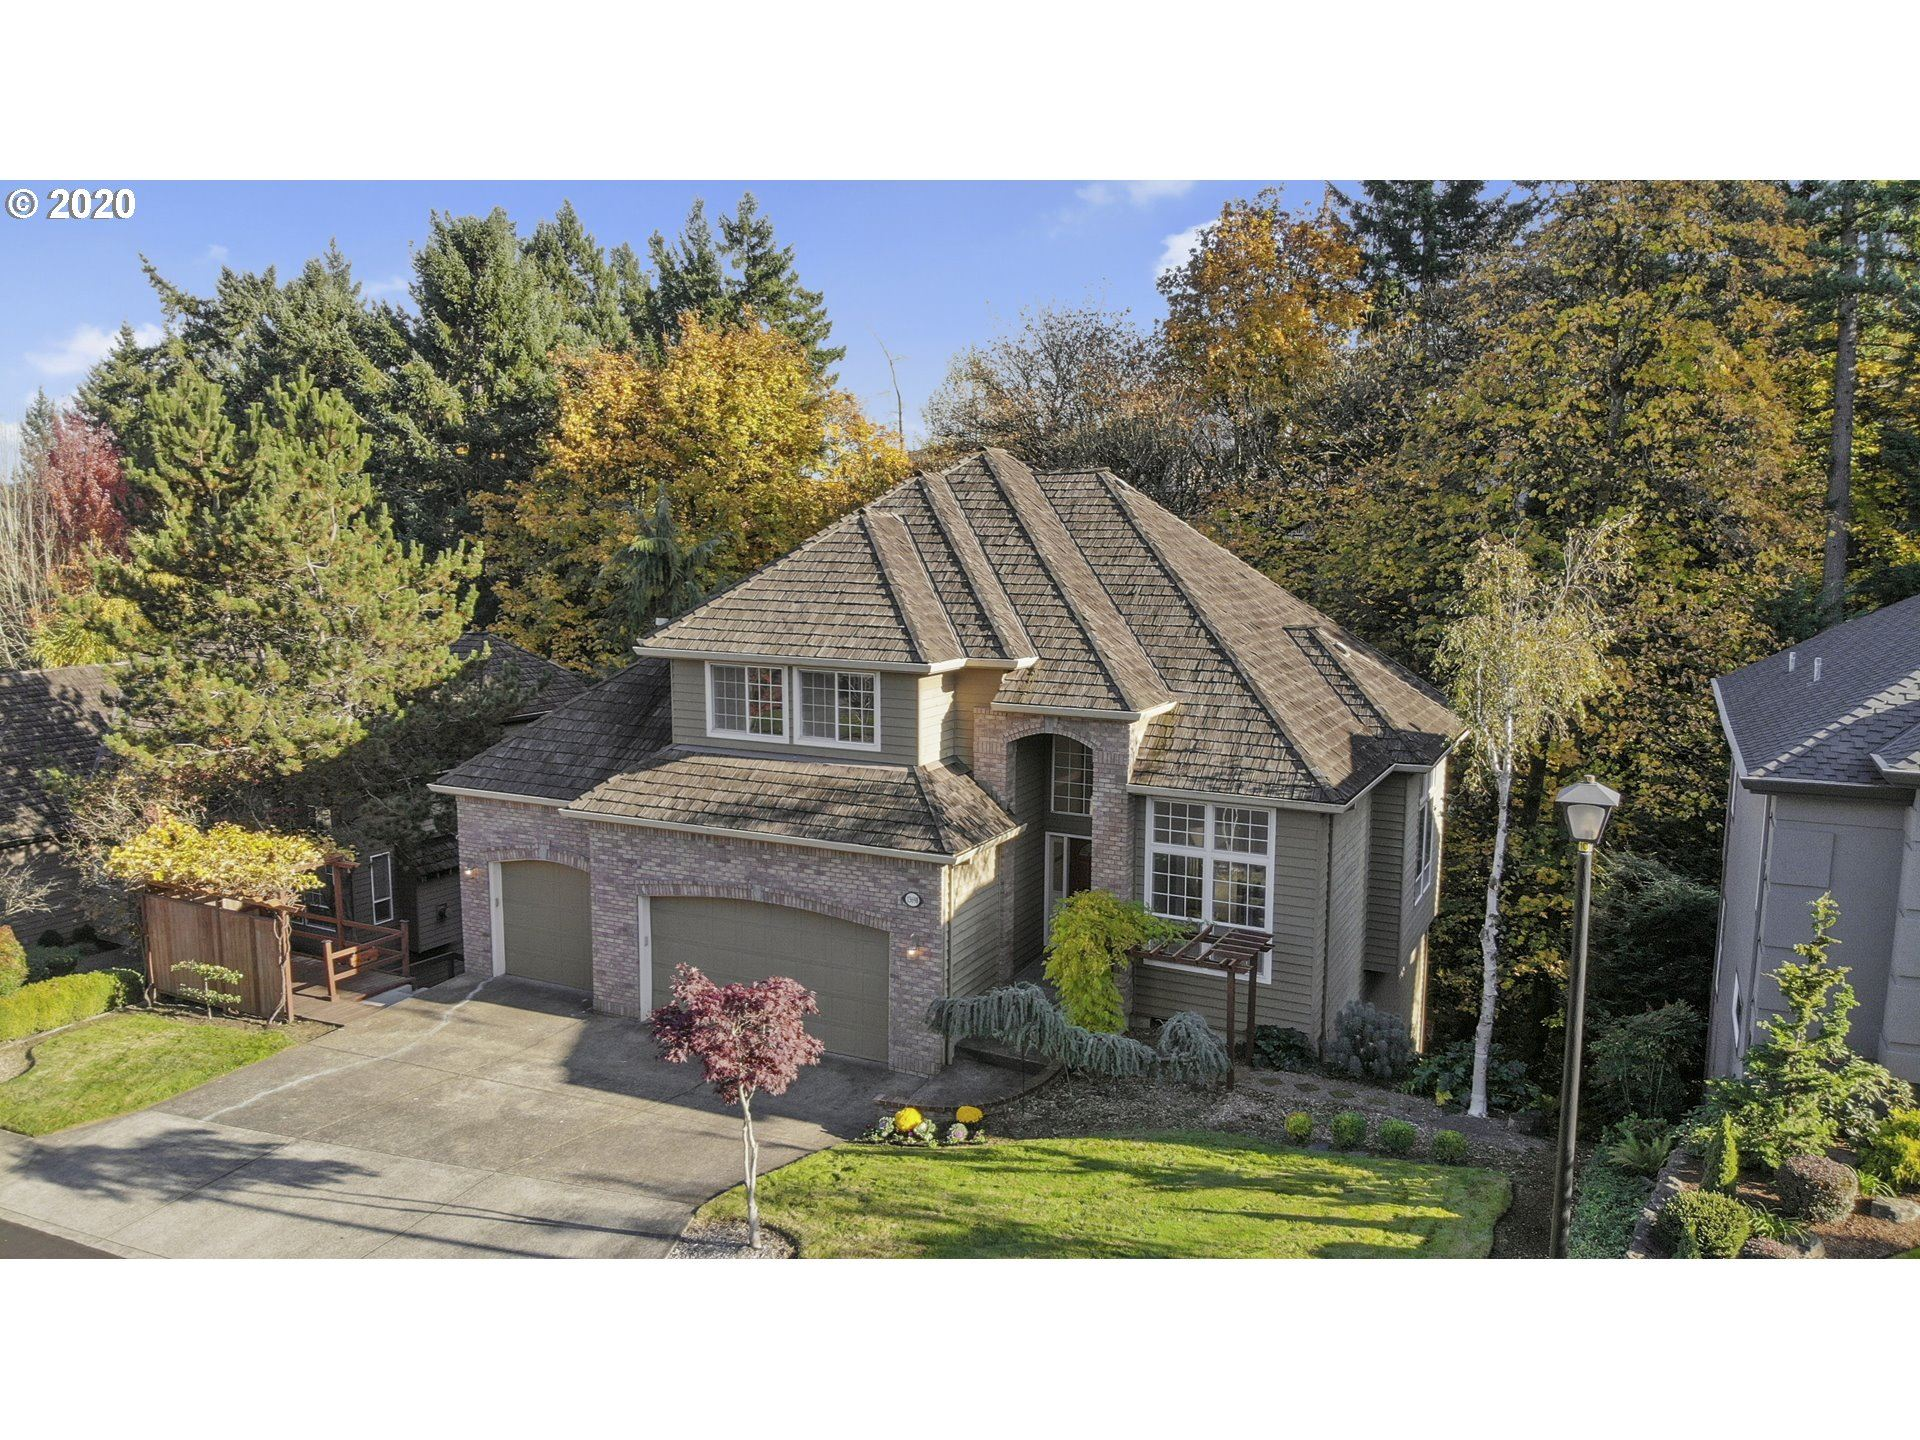 13698 SW HILLSHIRE DR, Tigard, OR 97223 - MLS#: 20226766